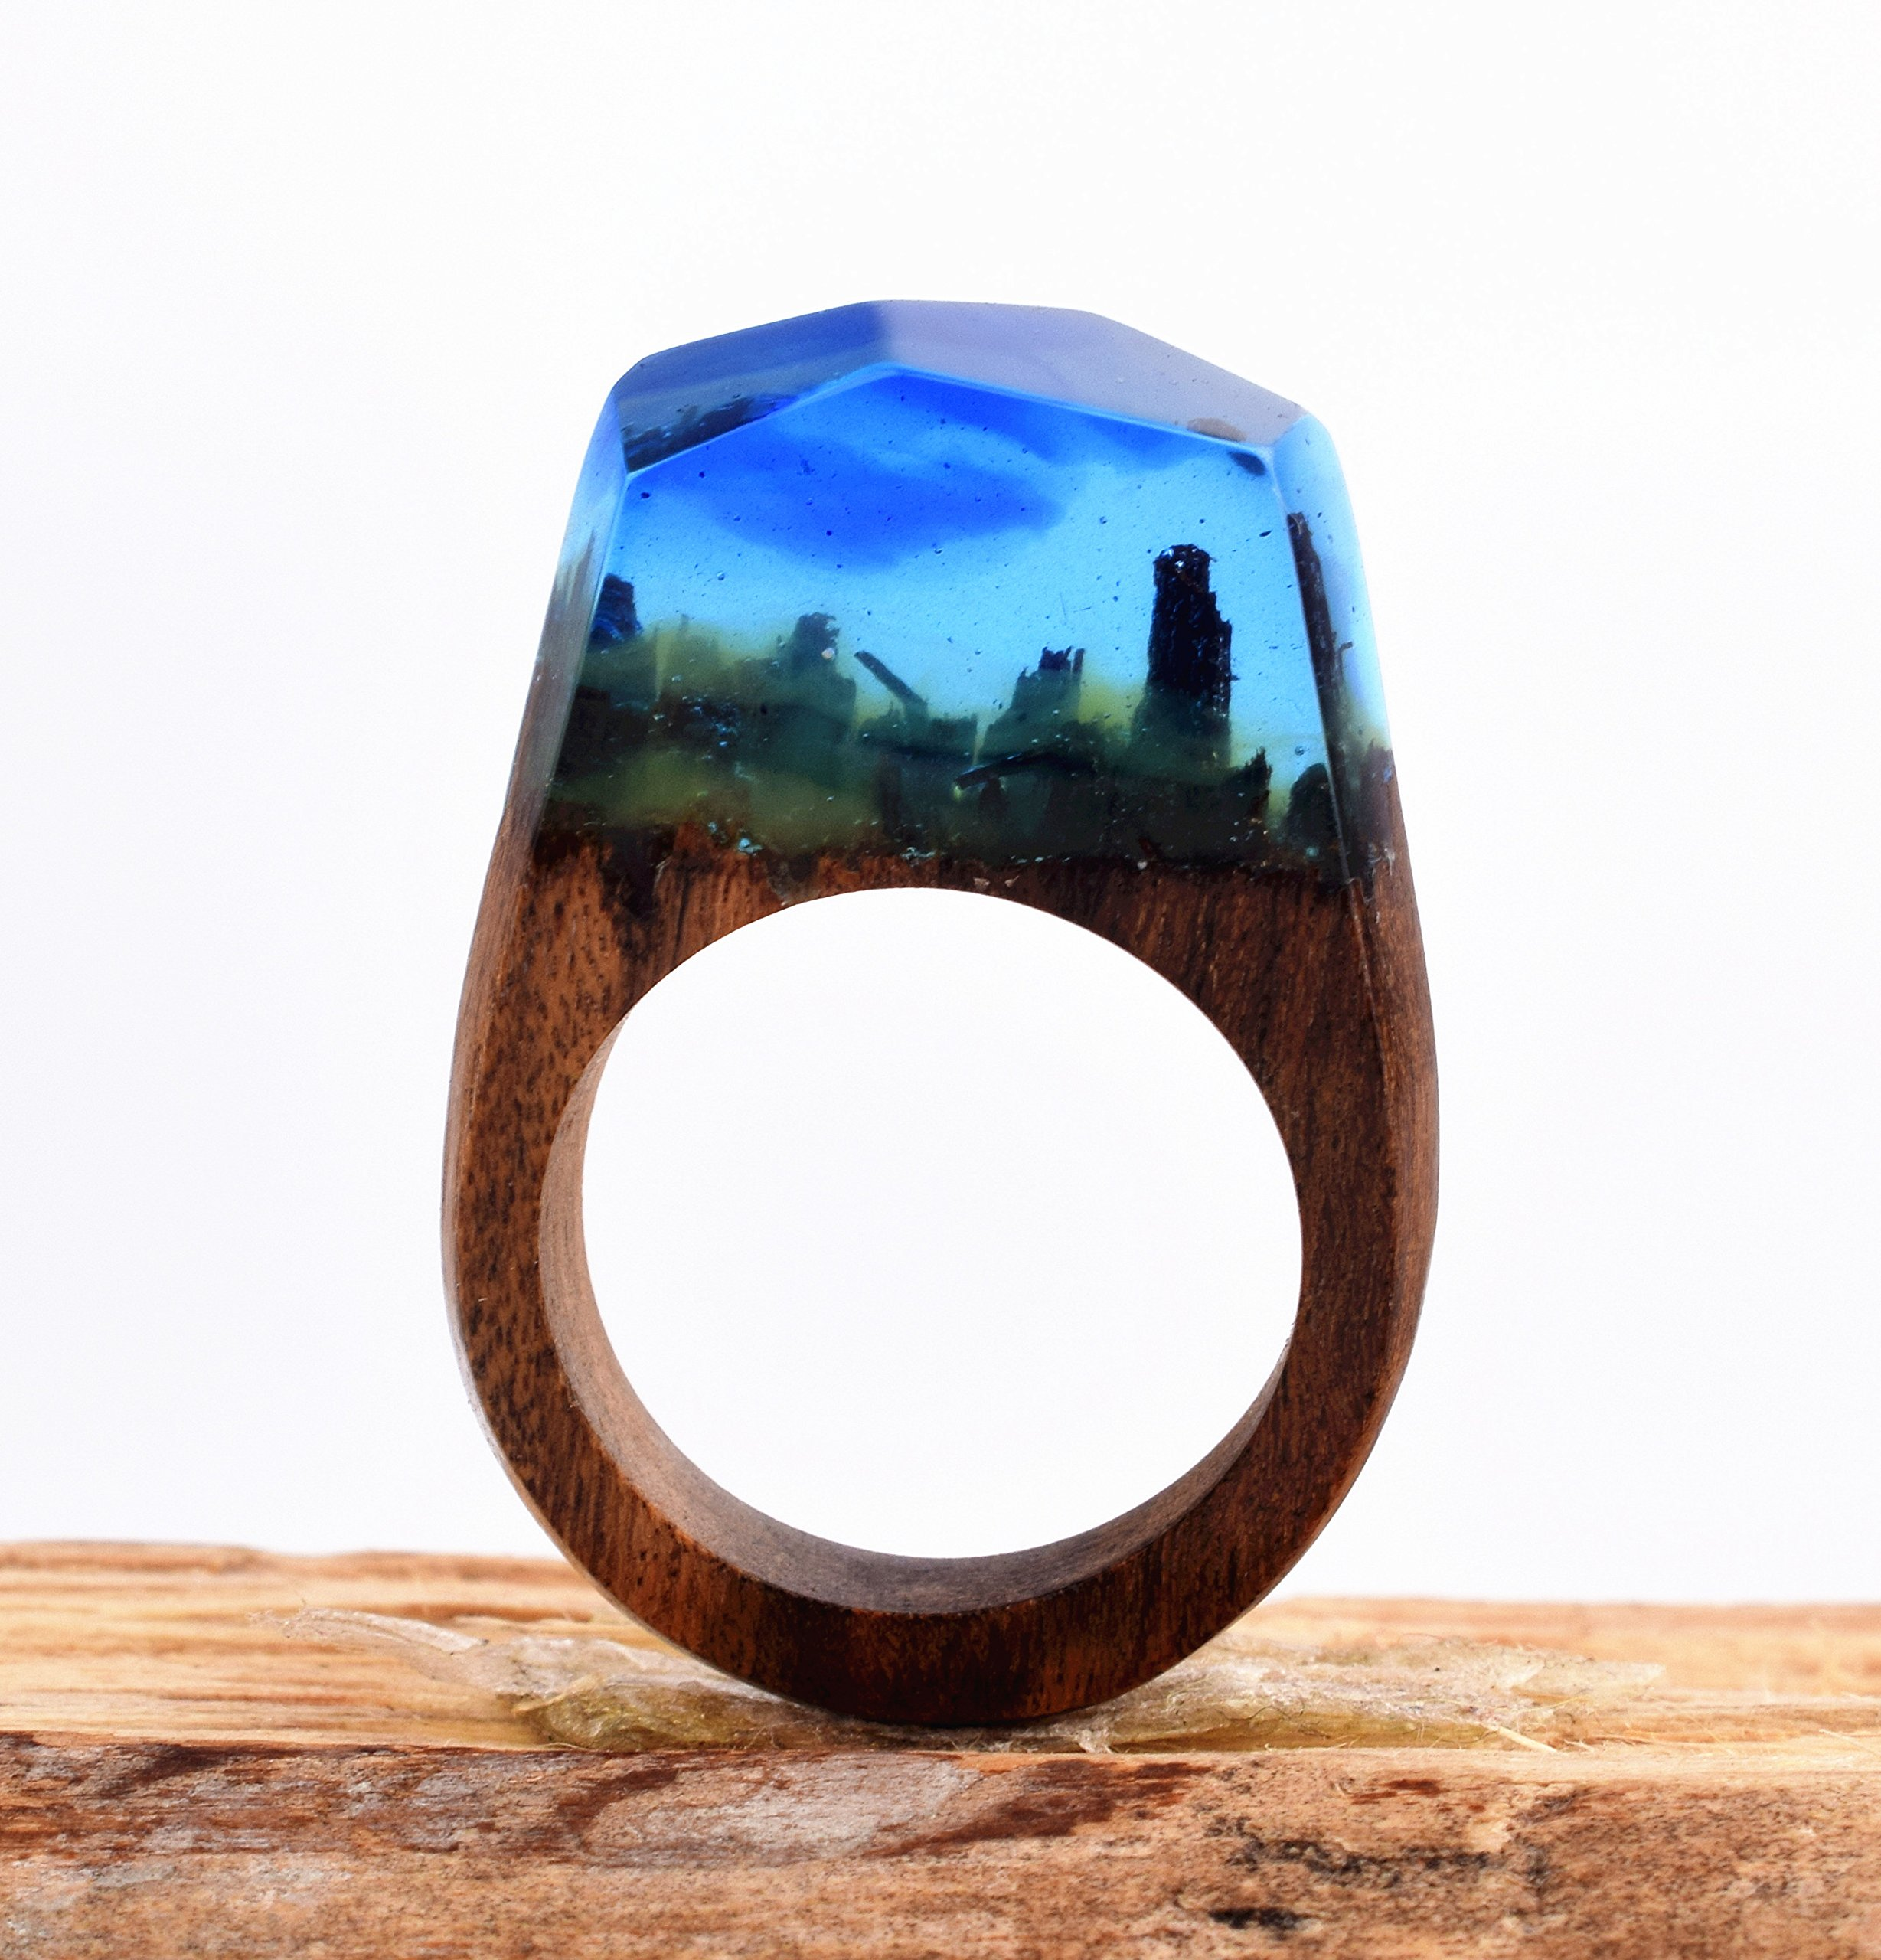 Heyou Love Handmade Wood Resin Ring With Nature Scenery Landscape Inside Jewelry by Heyou Love (Image #7)